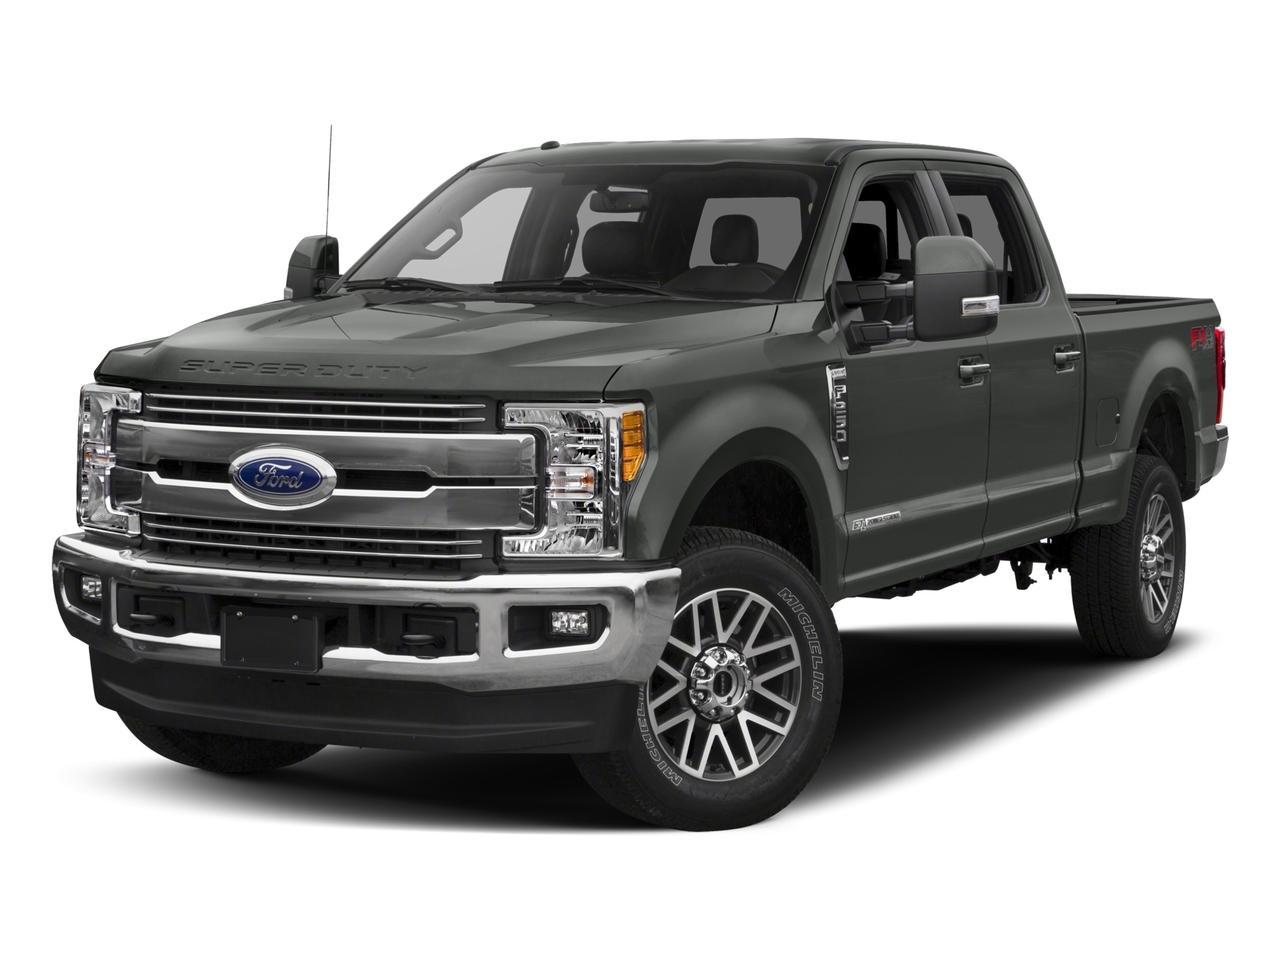 2017 Ford Super Duty F-250 SRW Vehicle Photo in BEND, OR 97701-5133